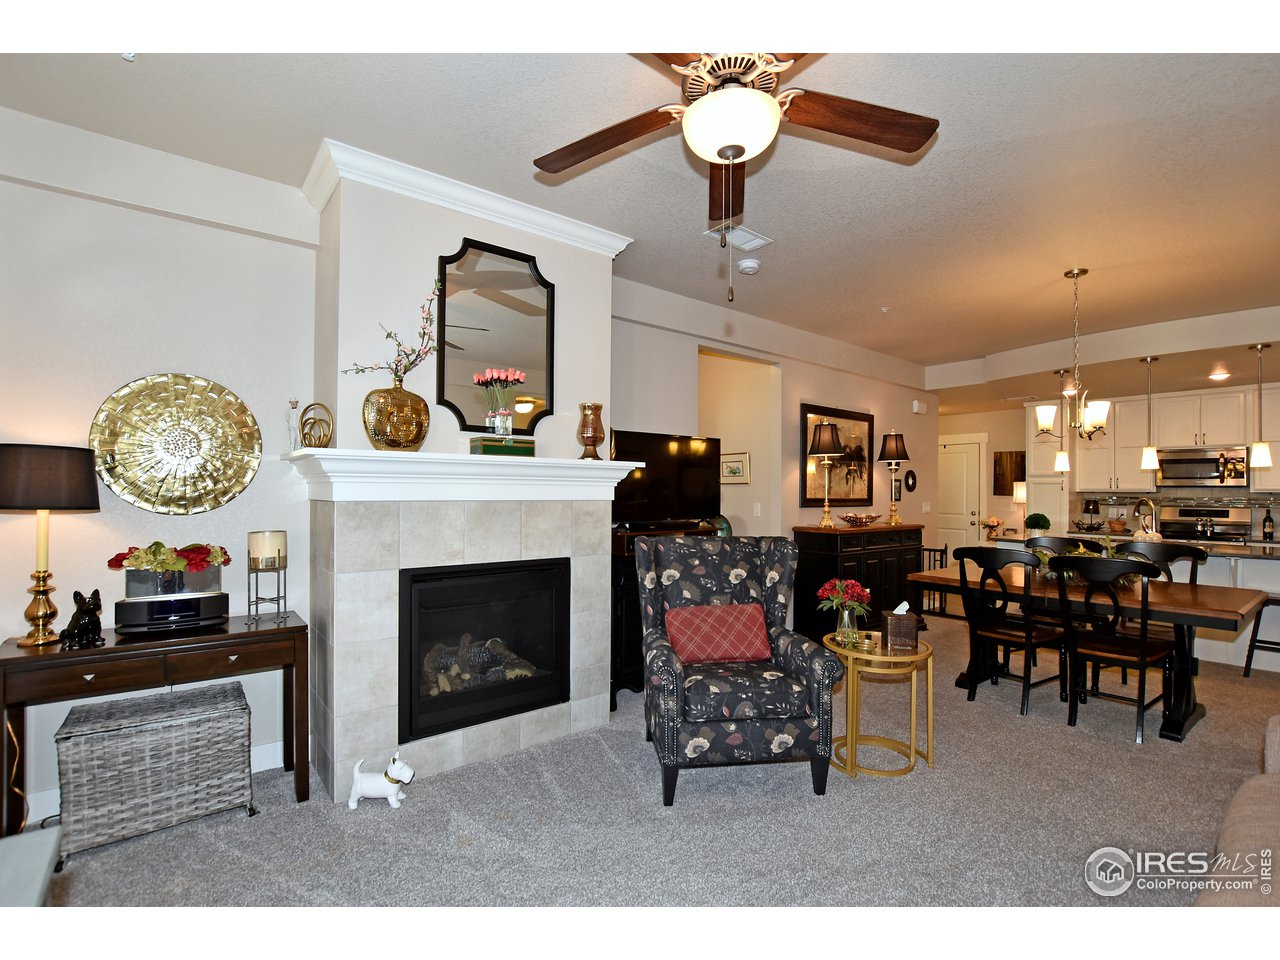 Enjoy cozy nights by the gas fireplace!